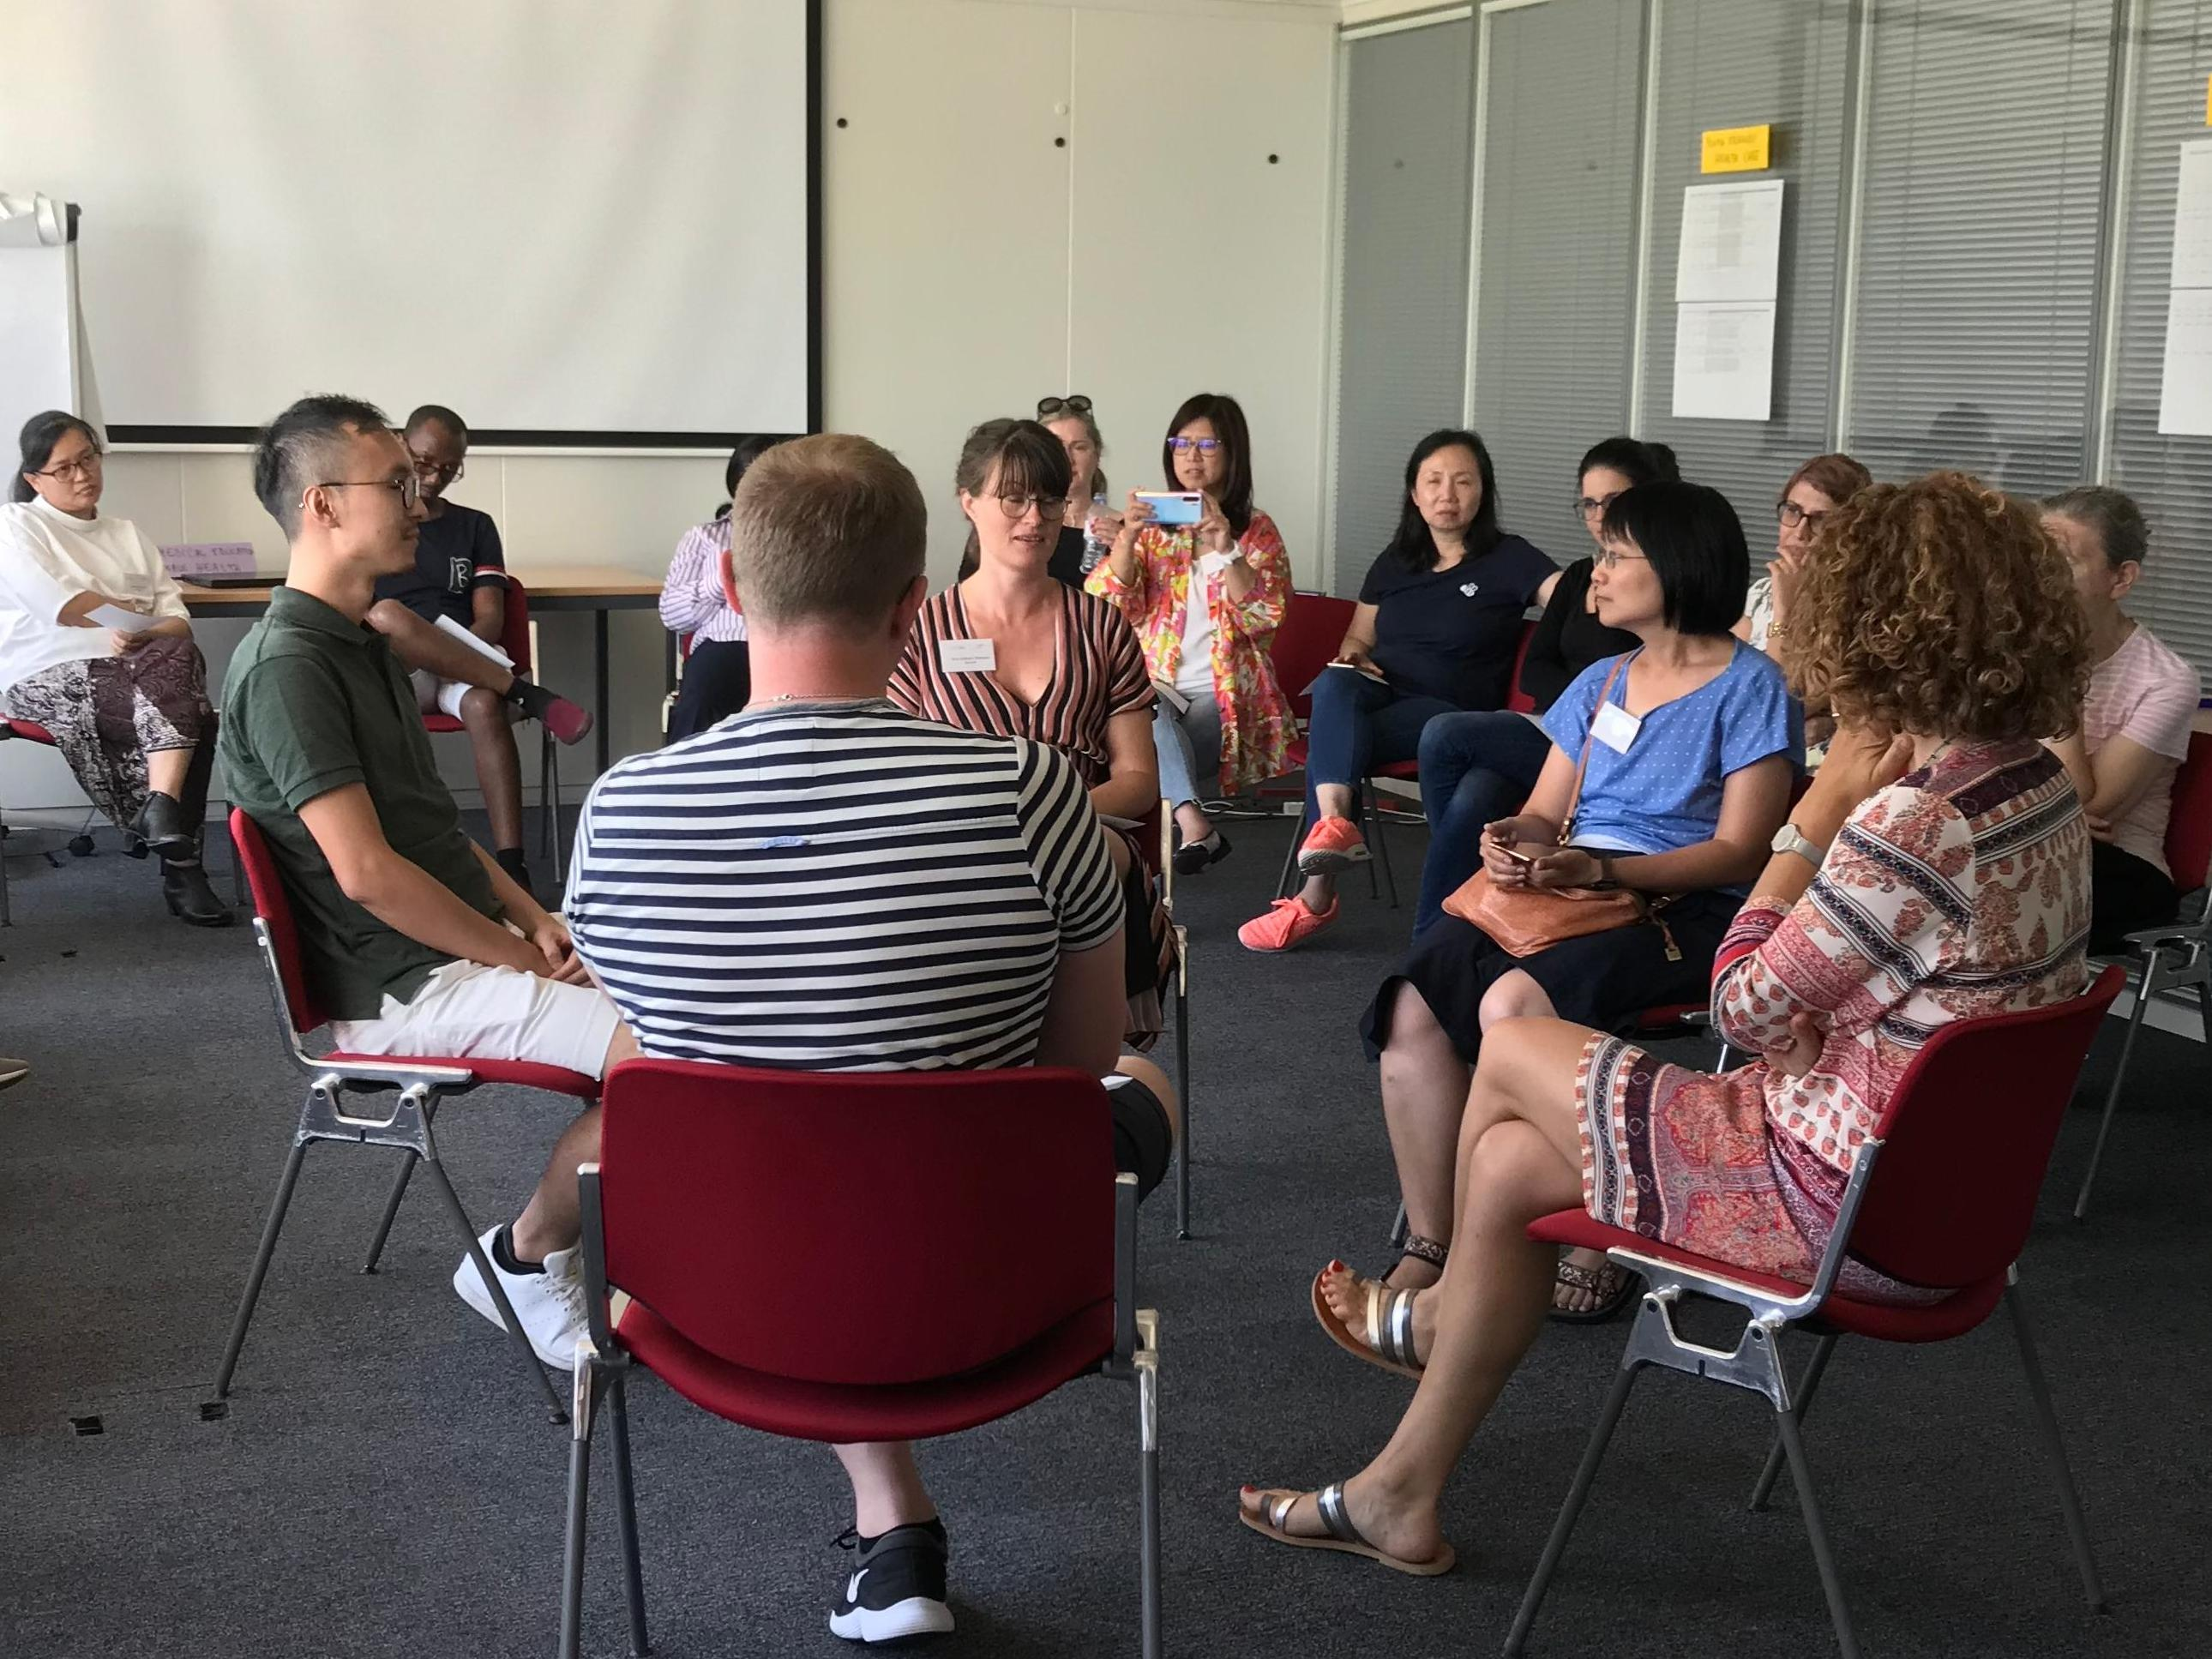 European training in effective adolescent care and health